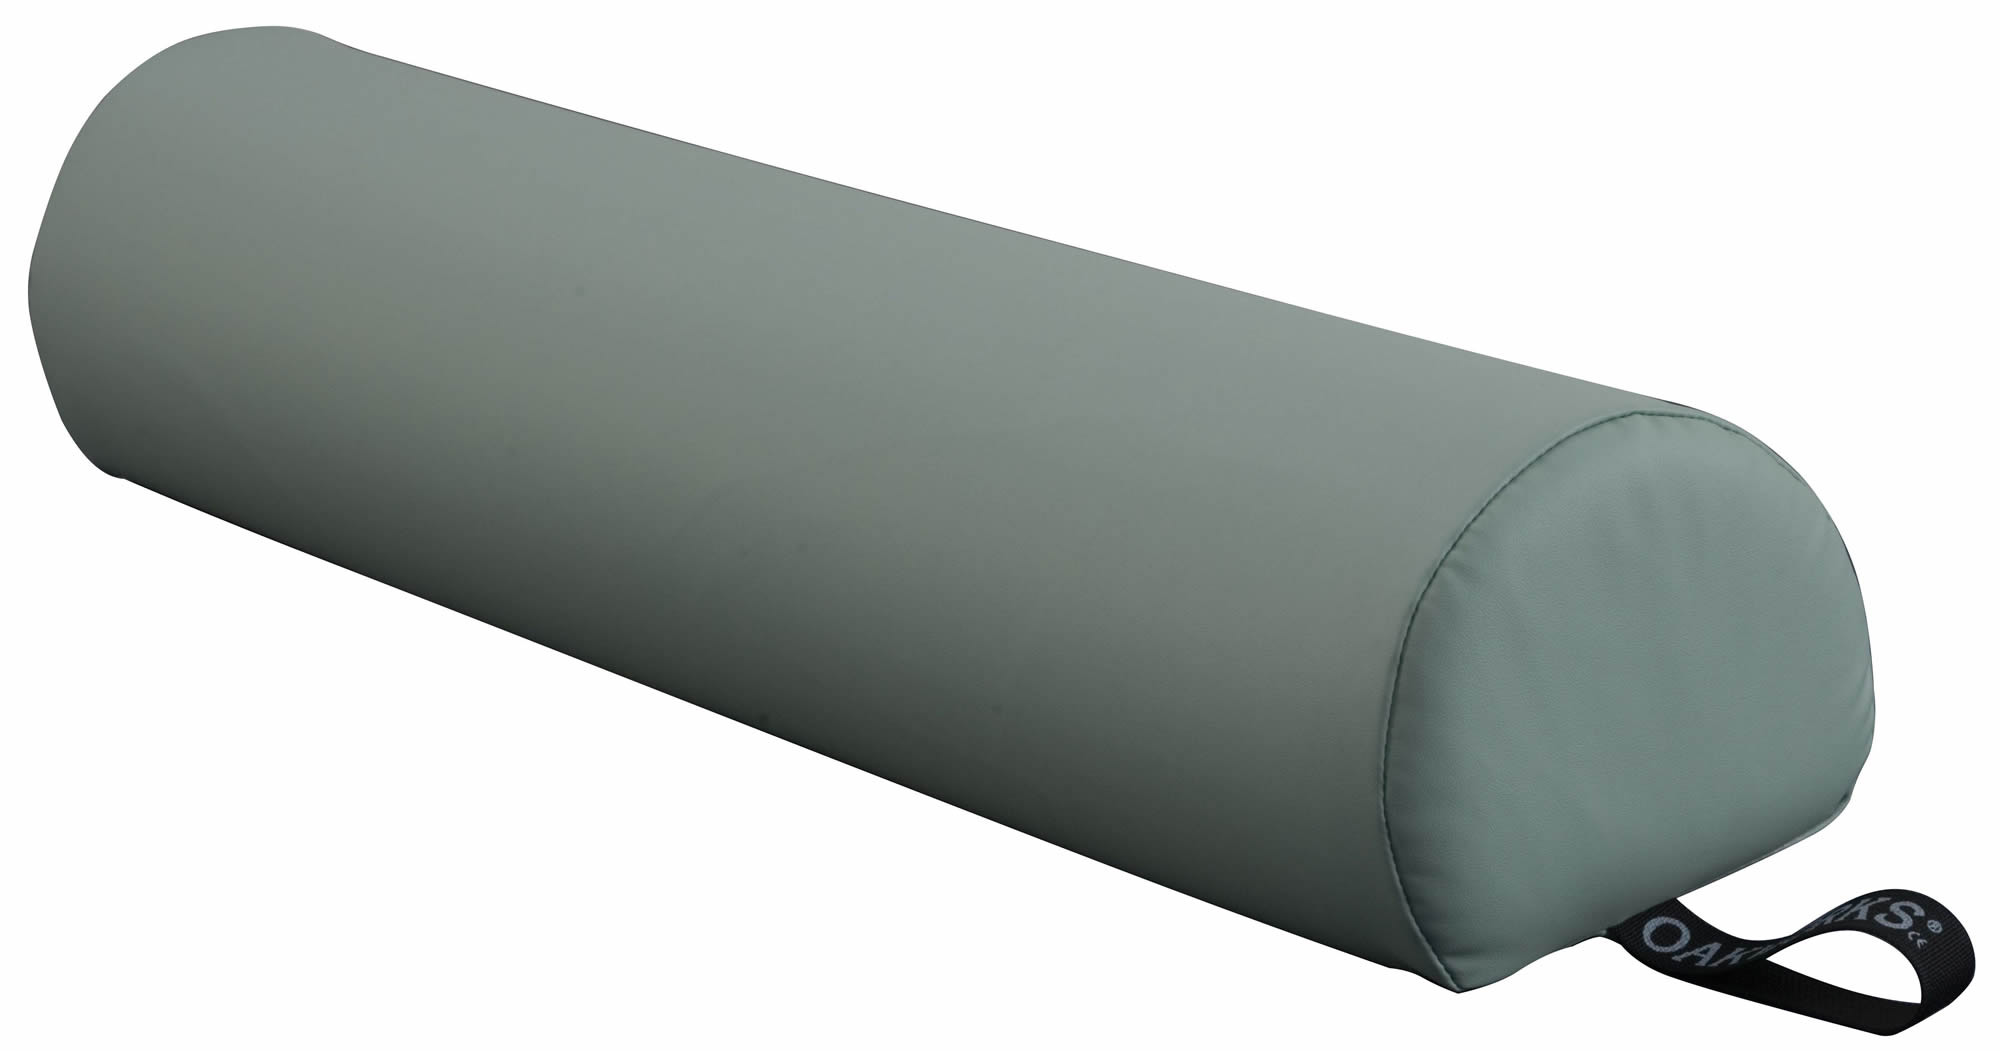 Bolster 6 in Semi-Round